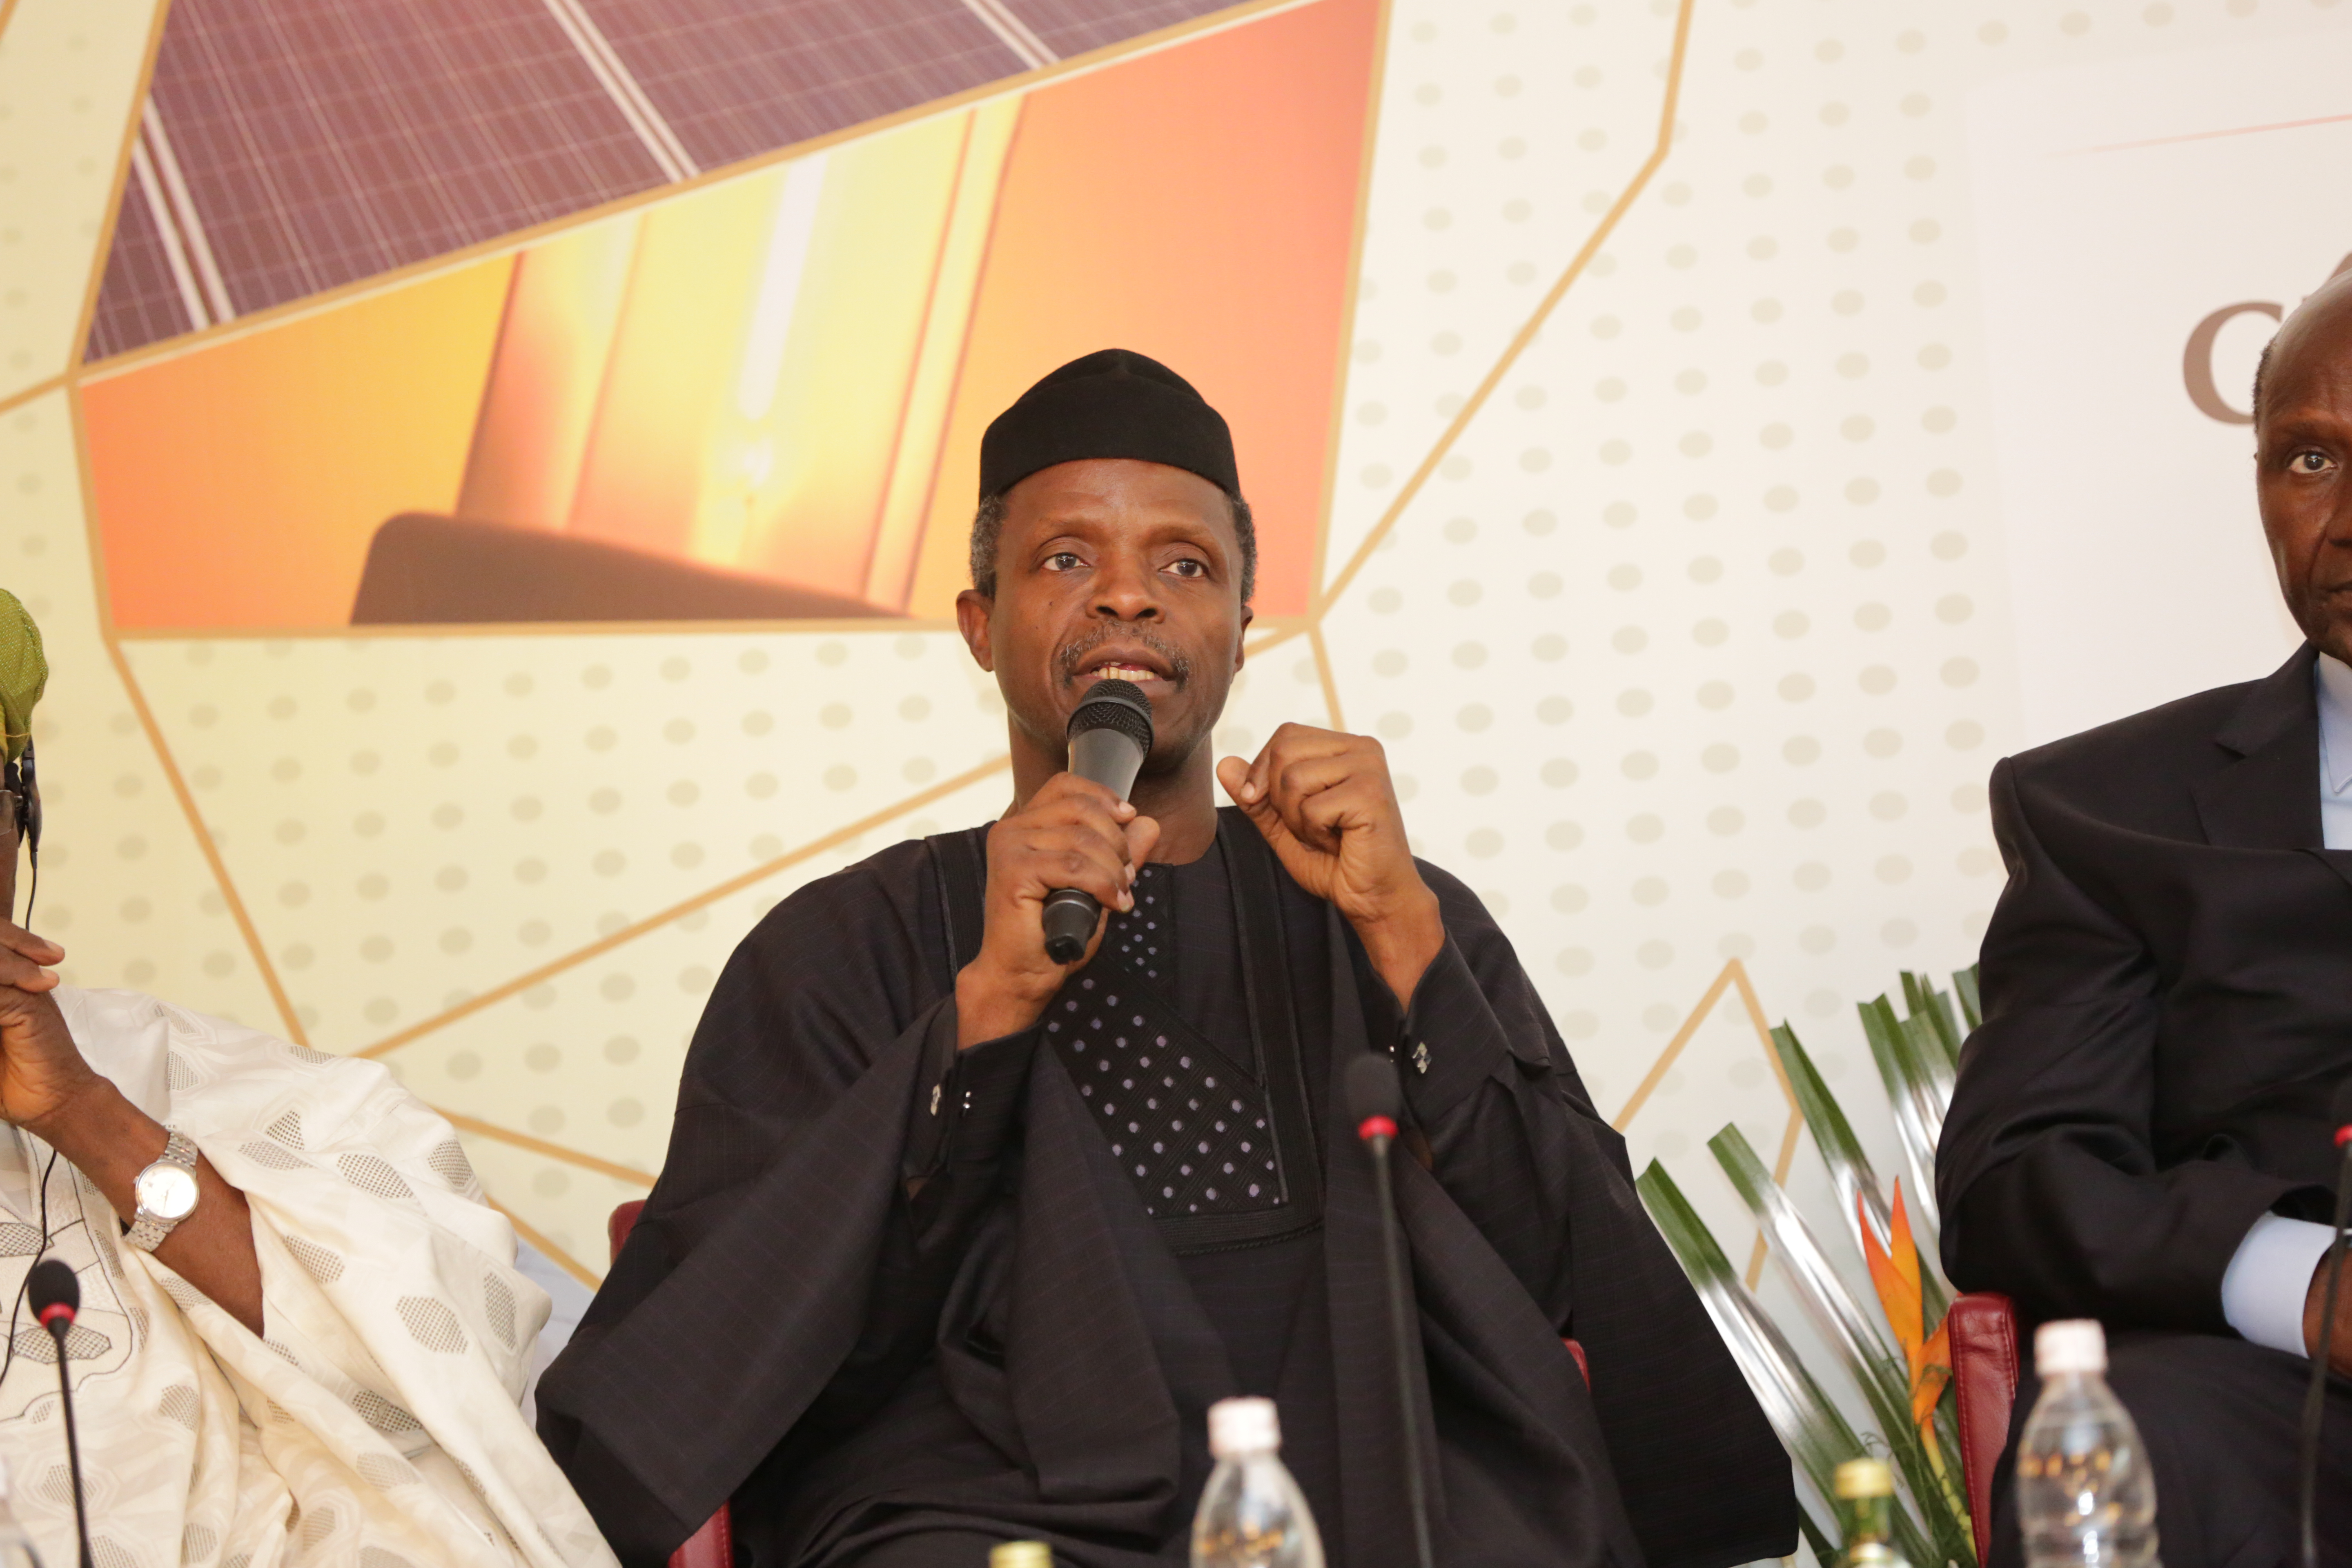 VP Osinbajo At The launch Of West Africa Energy Leaders Group In Abidjan, Cote D'Ivoire On 30/06/2015